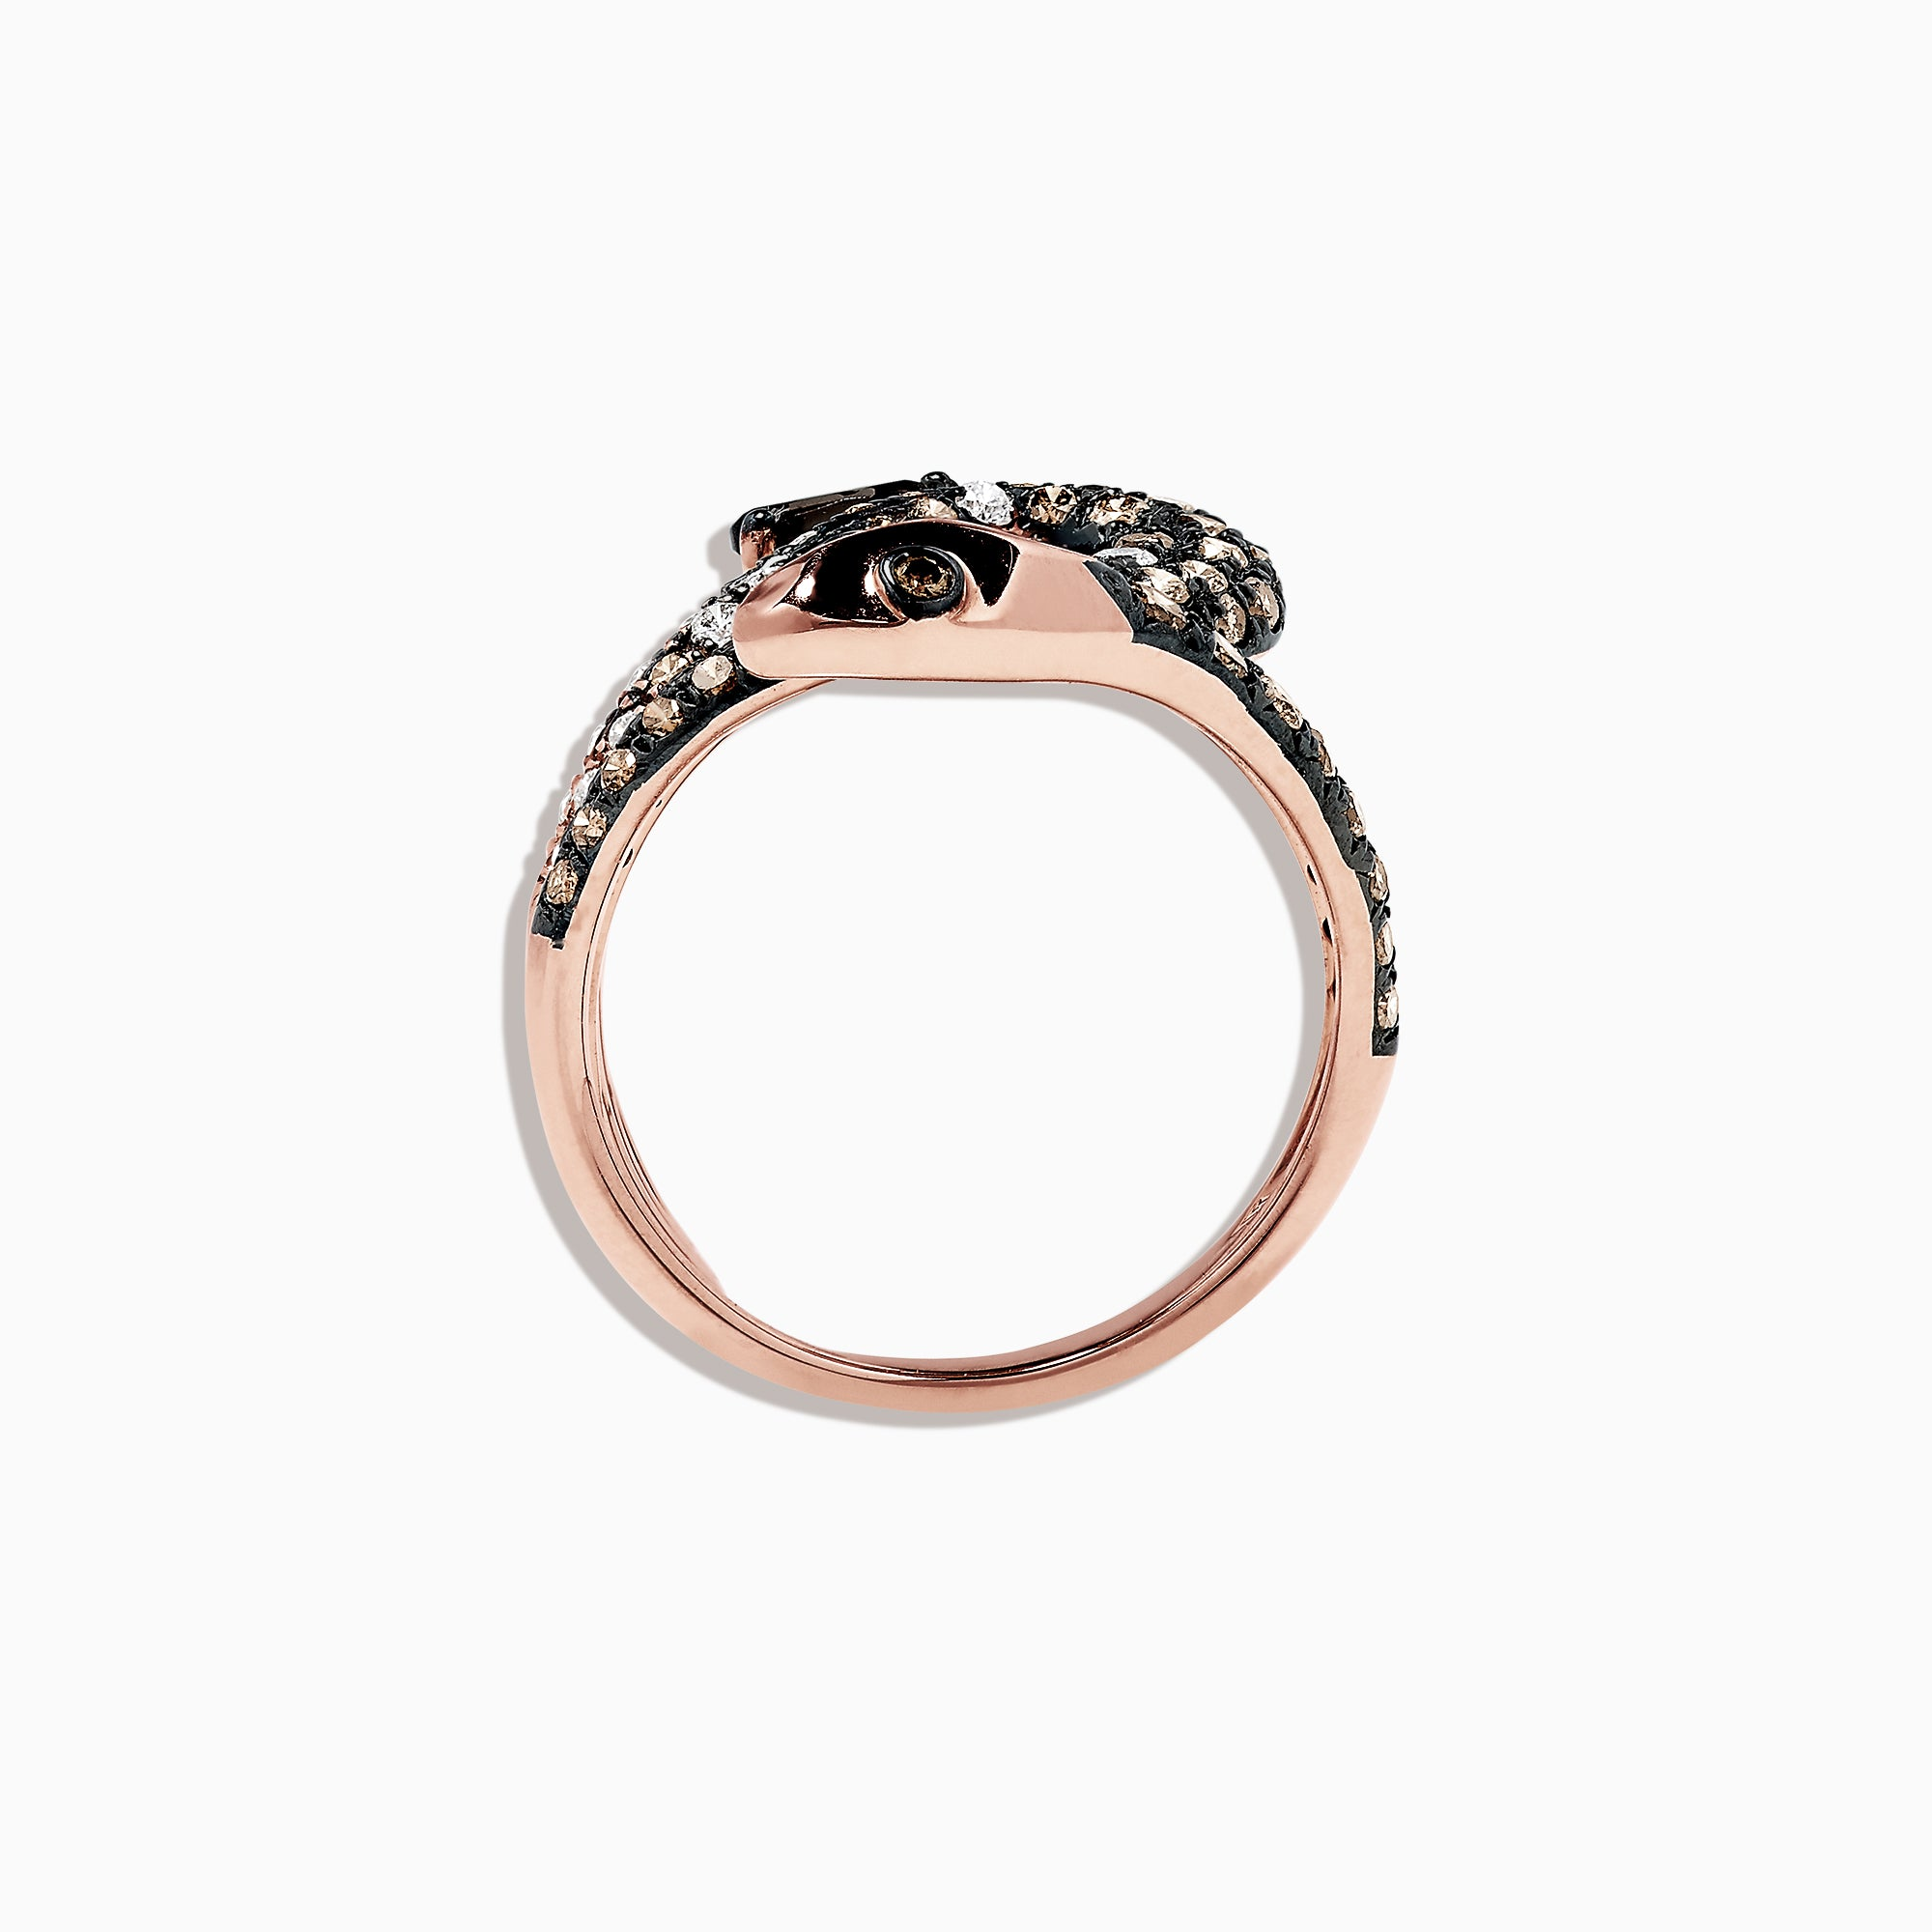 Effy Safari 14K Rose Gold Diamond and Smokey Quartz Snake Ring, 1.38 TCW